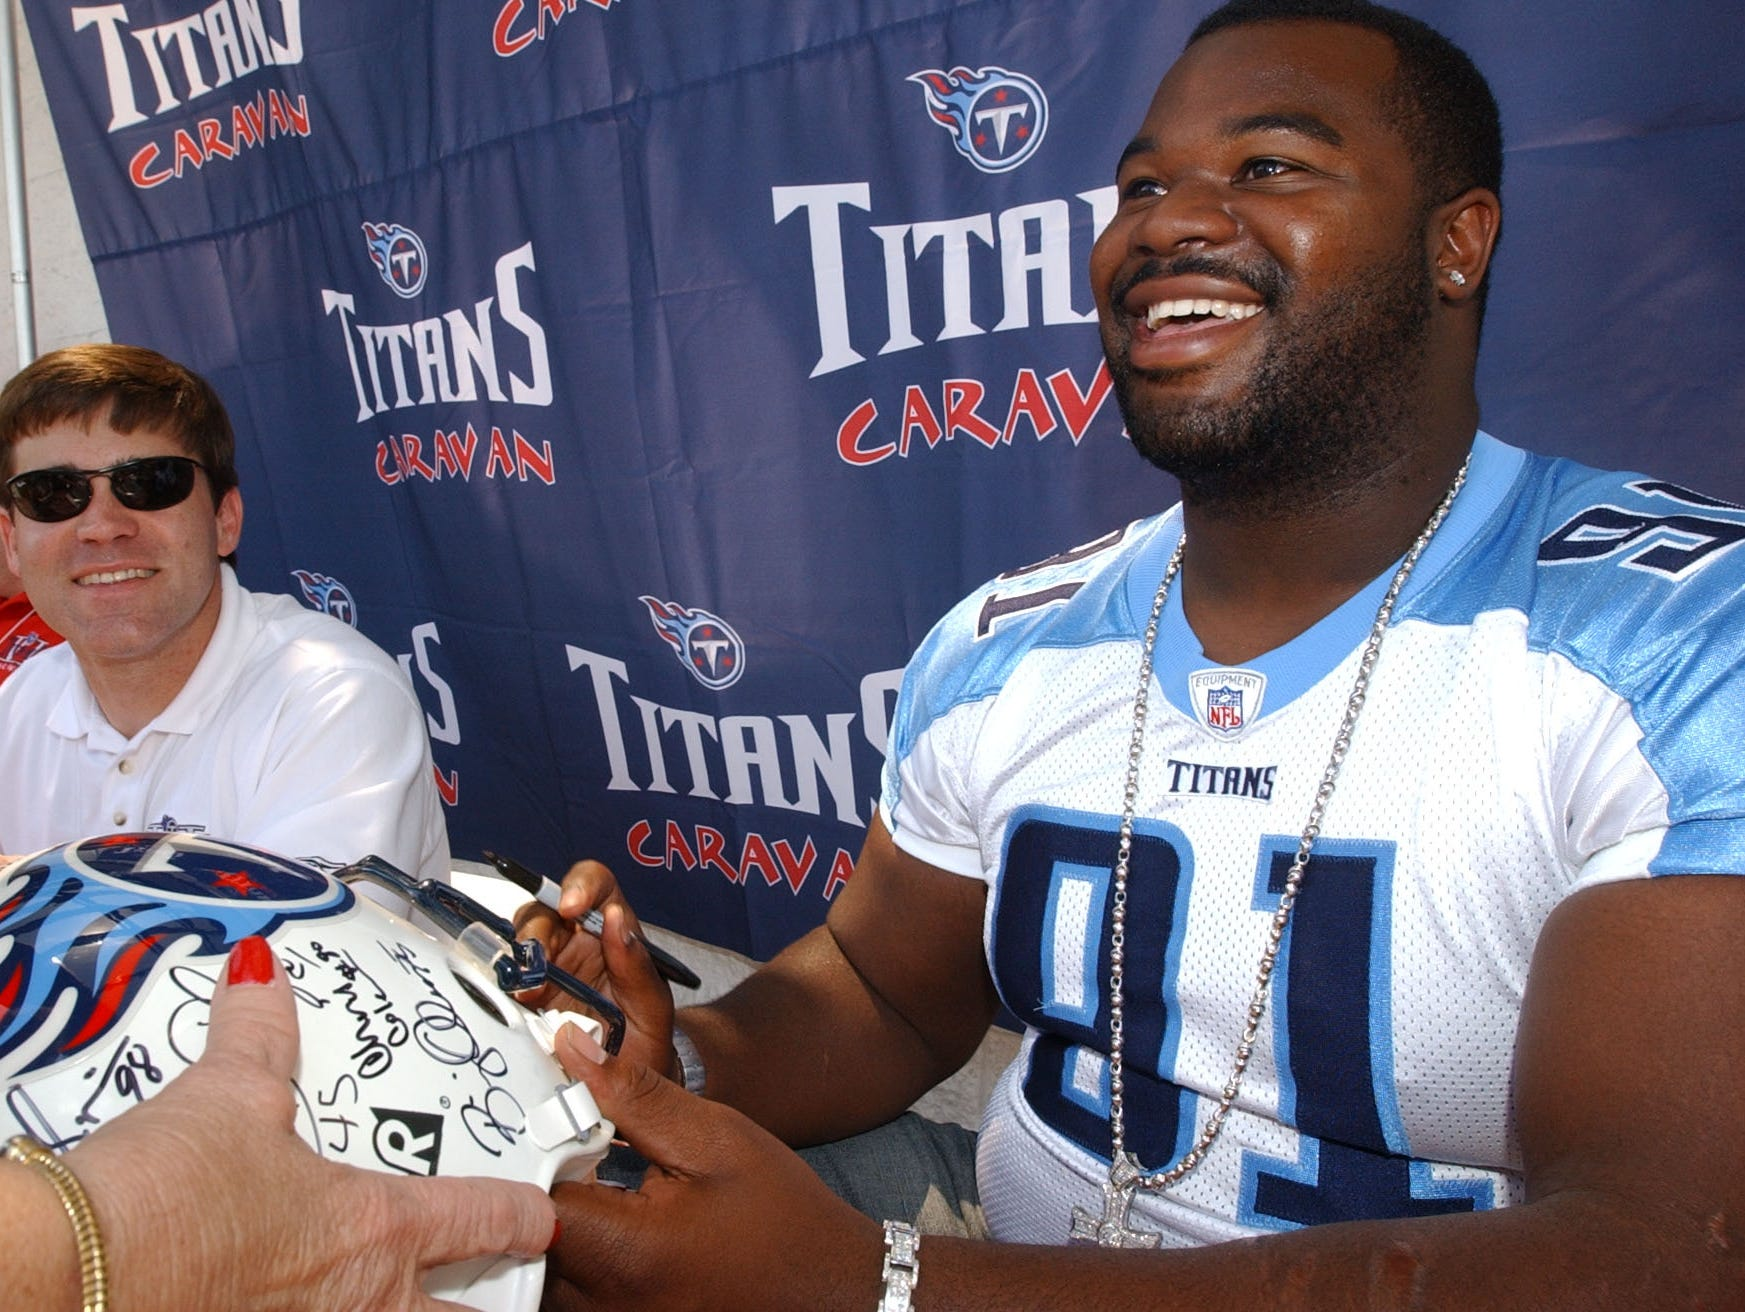 Albert Haynesworth returns a Titan helment to Avanell Robinson during an autograph session in Rockwood in 2003